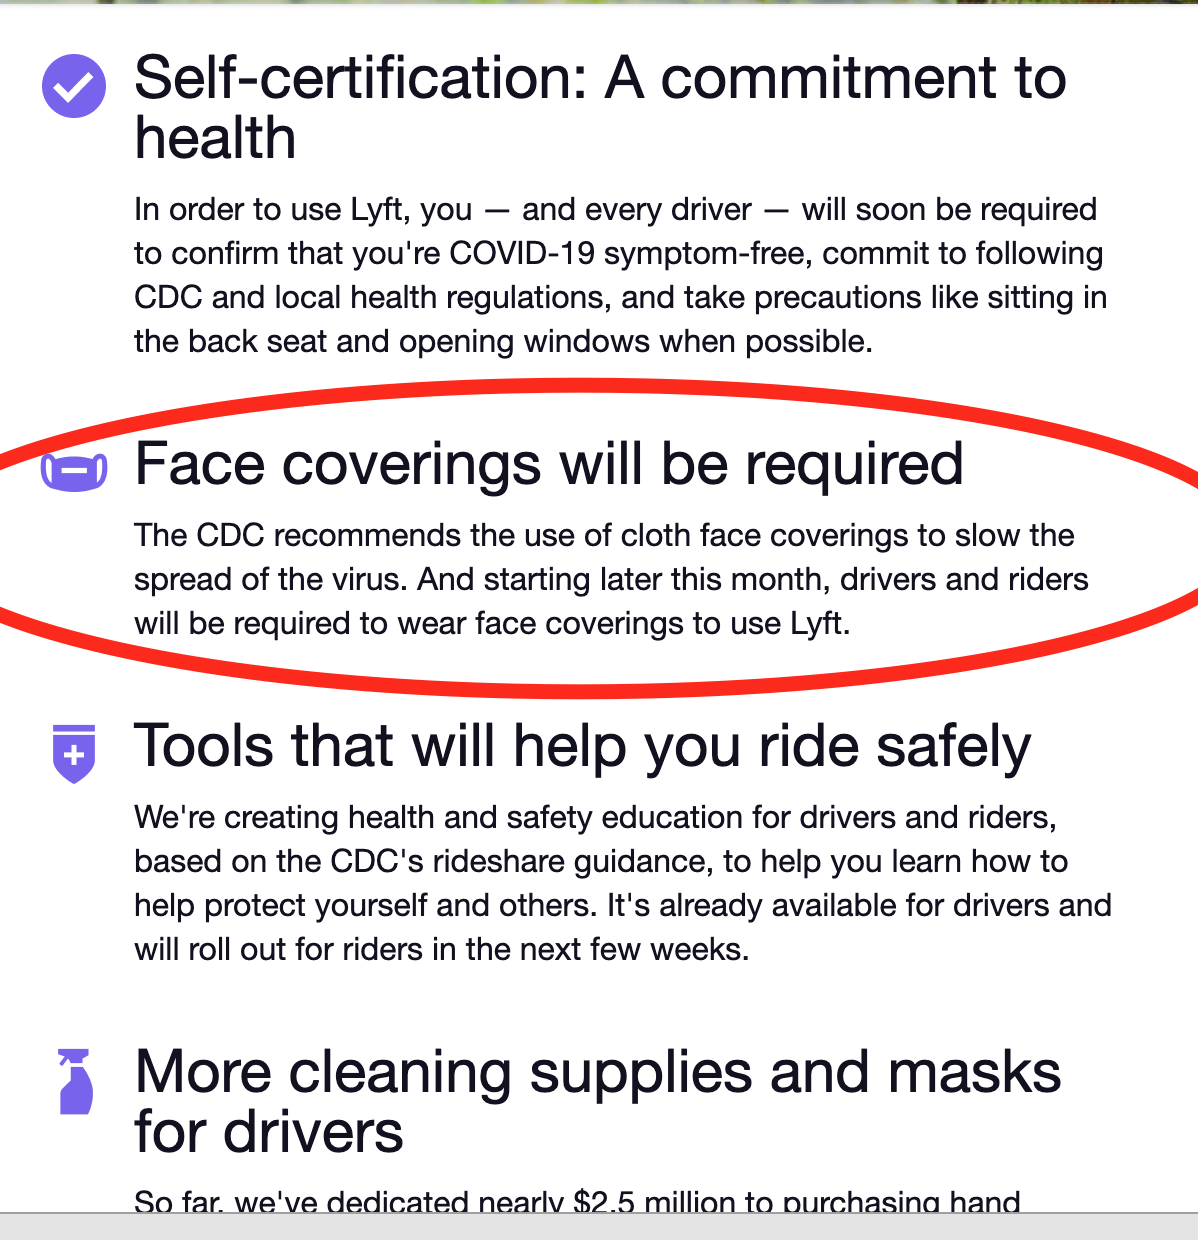 lyft requires masks for drivers